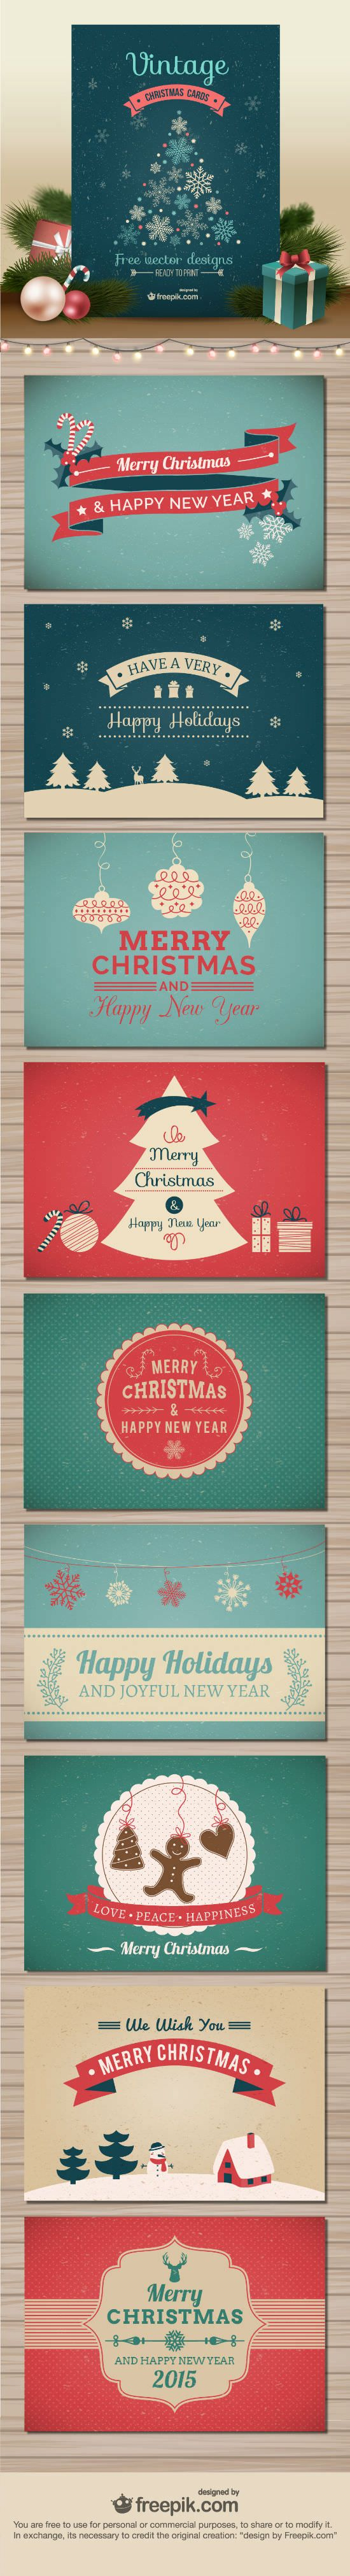 26 best Best Christmas Templates images on Pinterest